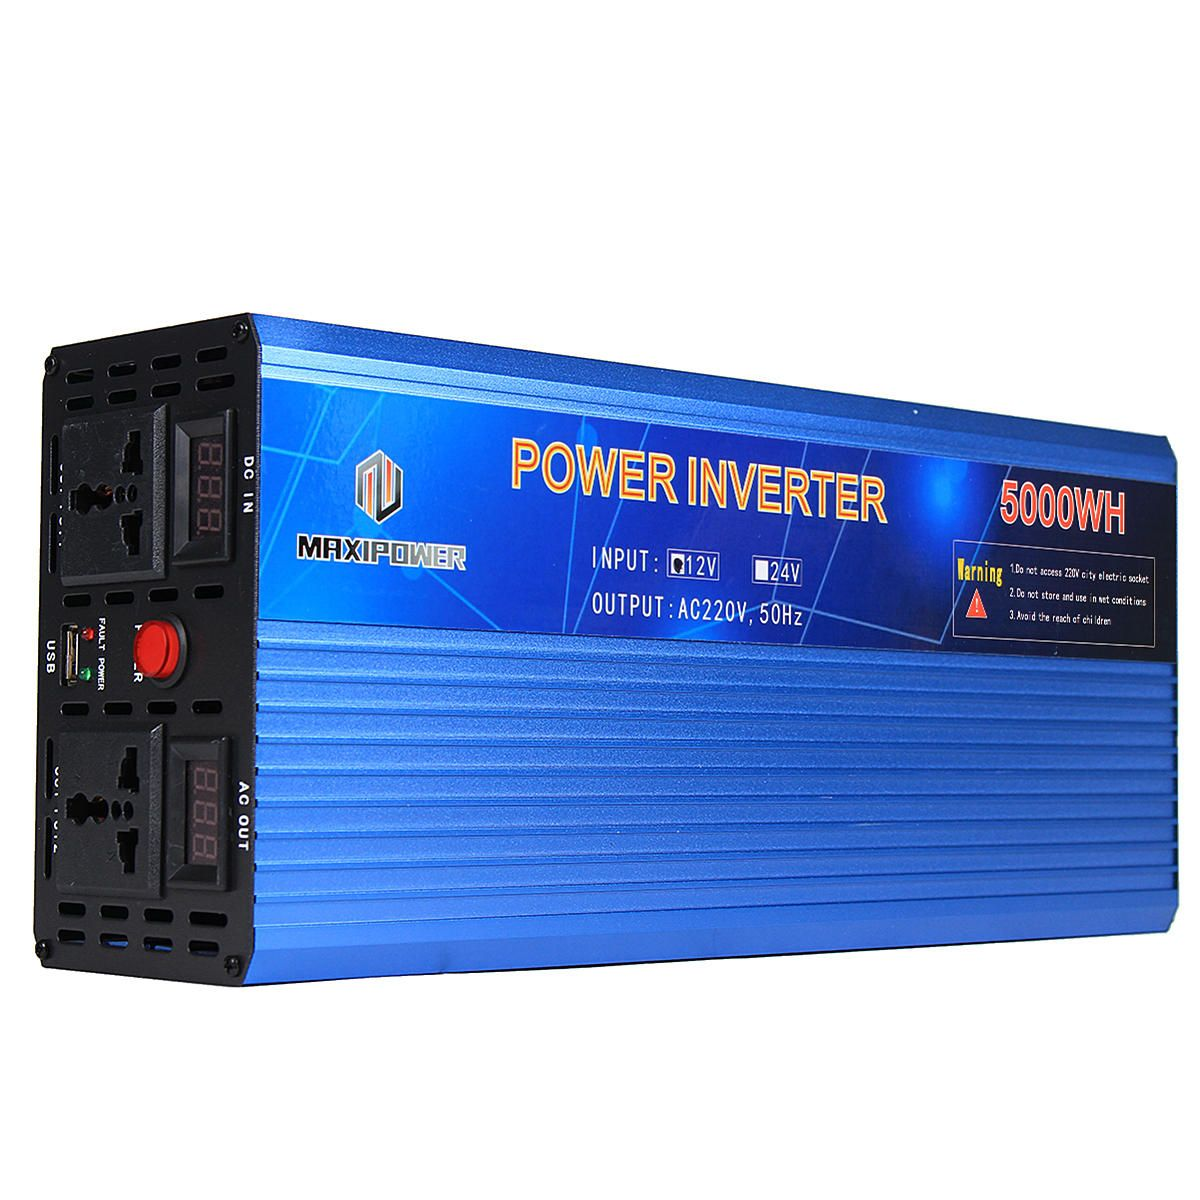 Us 104 15 12v To 220v Power Inverter Modified Sine Wave Power Converter 3000w 4000w 5000w Double Display Electrical Equipment Supplies From Tools I